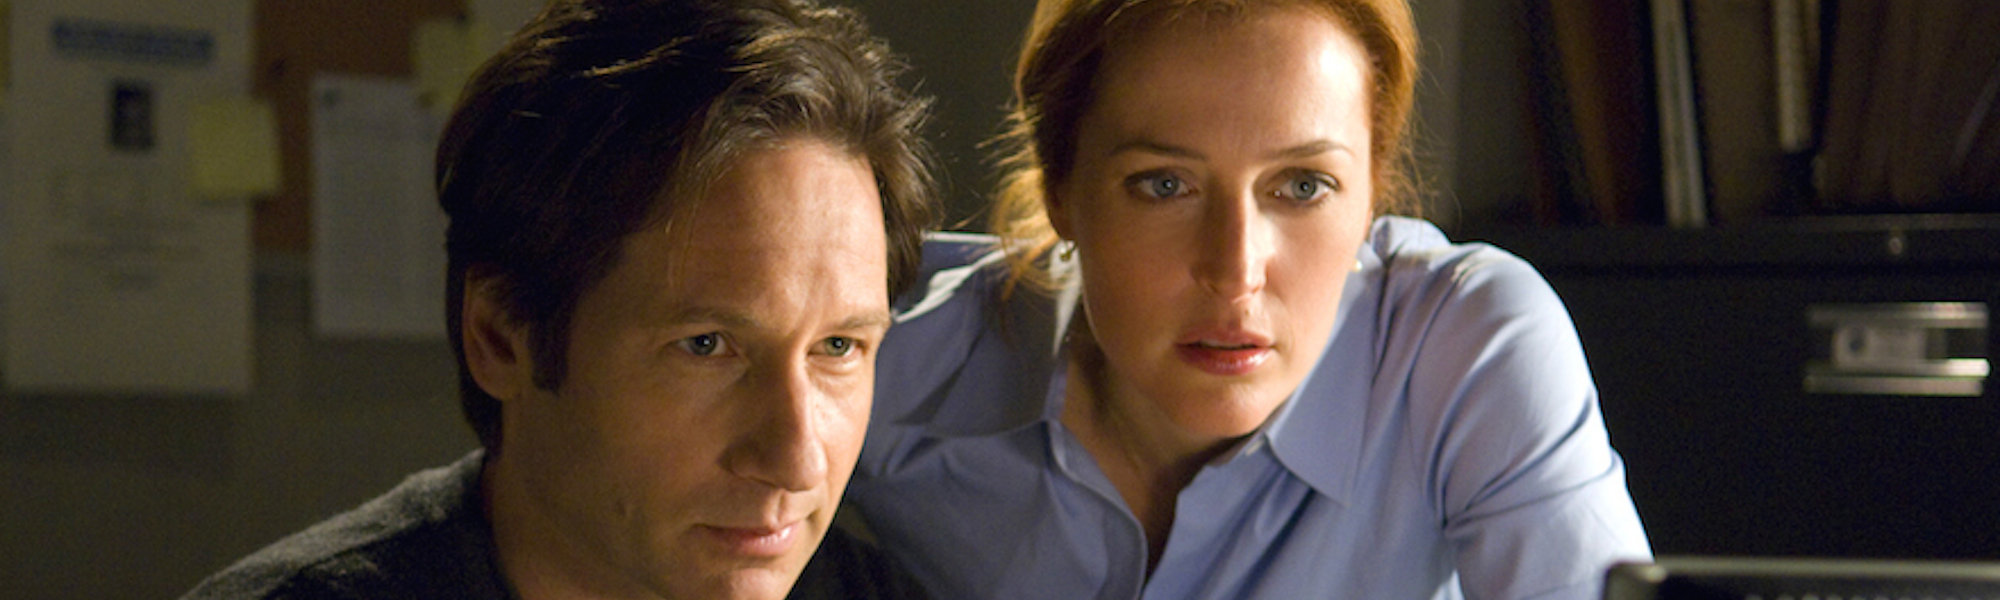 Y02SumMovieJ - For FriMag - THE X-FILES: I WANT TO BELIEVE - David Duchovny and Gillian Anderson reprise their roles from the legendary television series as, respectively, Fox Mulder and Dana Scully. Photo credit: Diyah Pera/© 2008 Twentieth Century Fox Film Corporation. Maximum width 80.91 picas at 200 dpi. 4/28/08